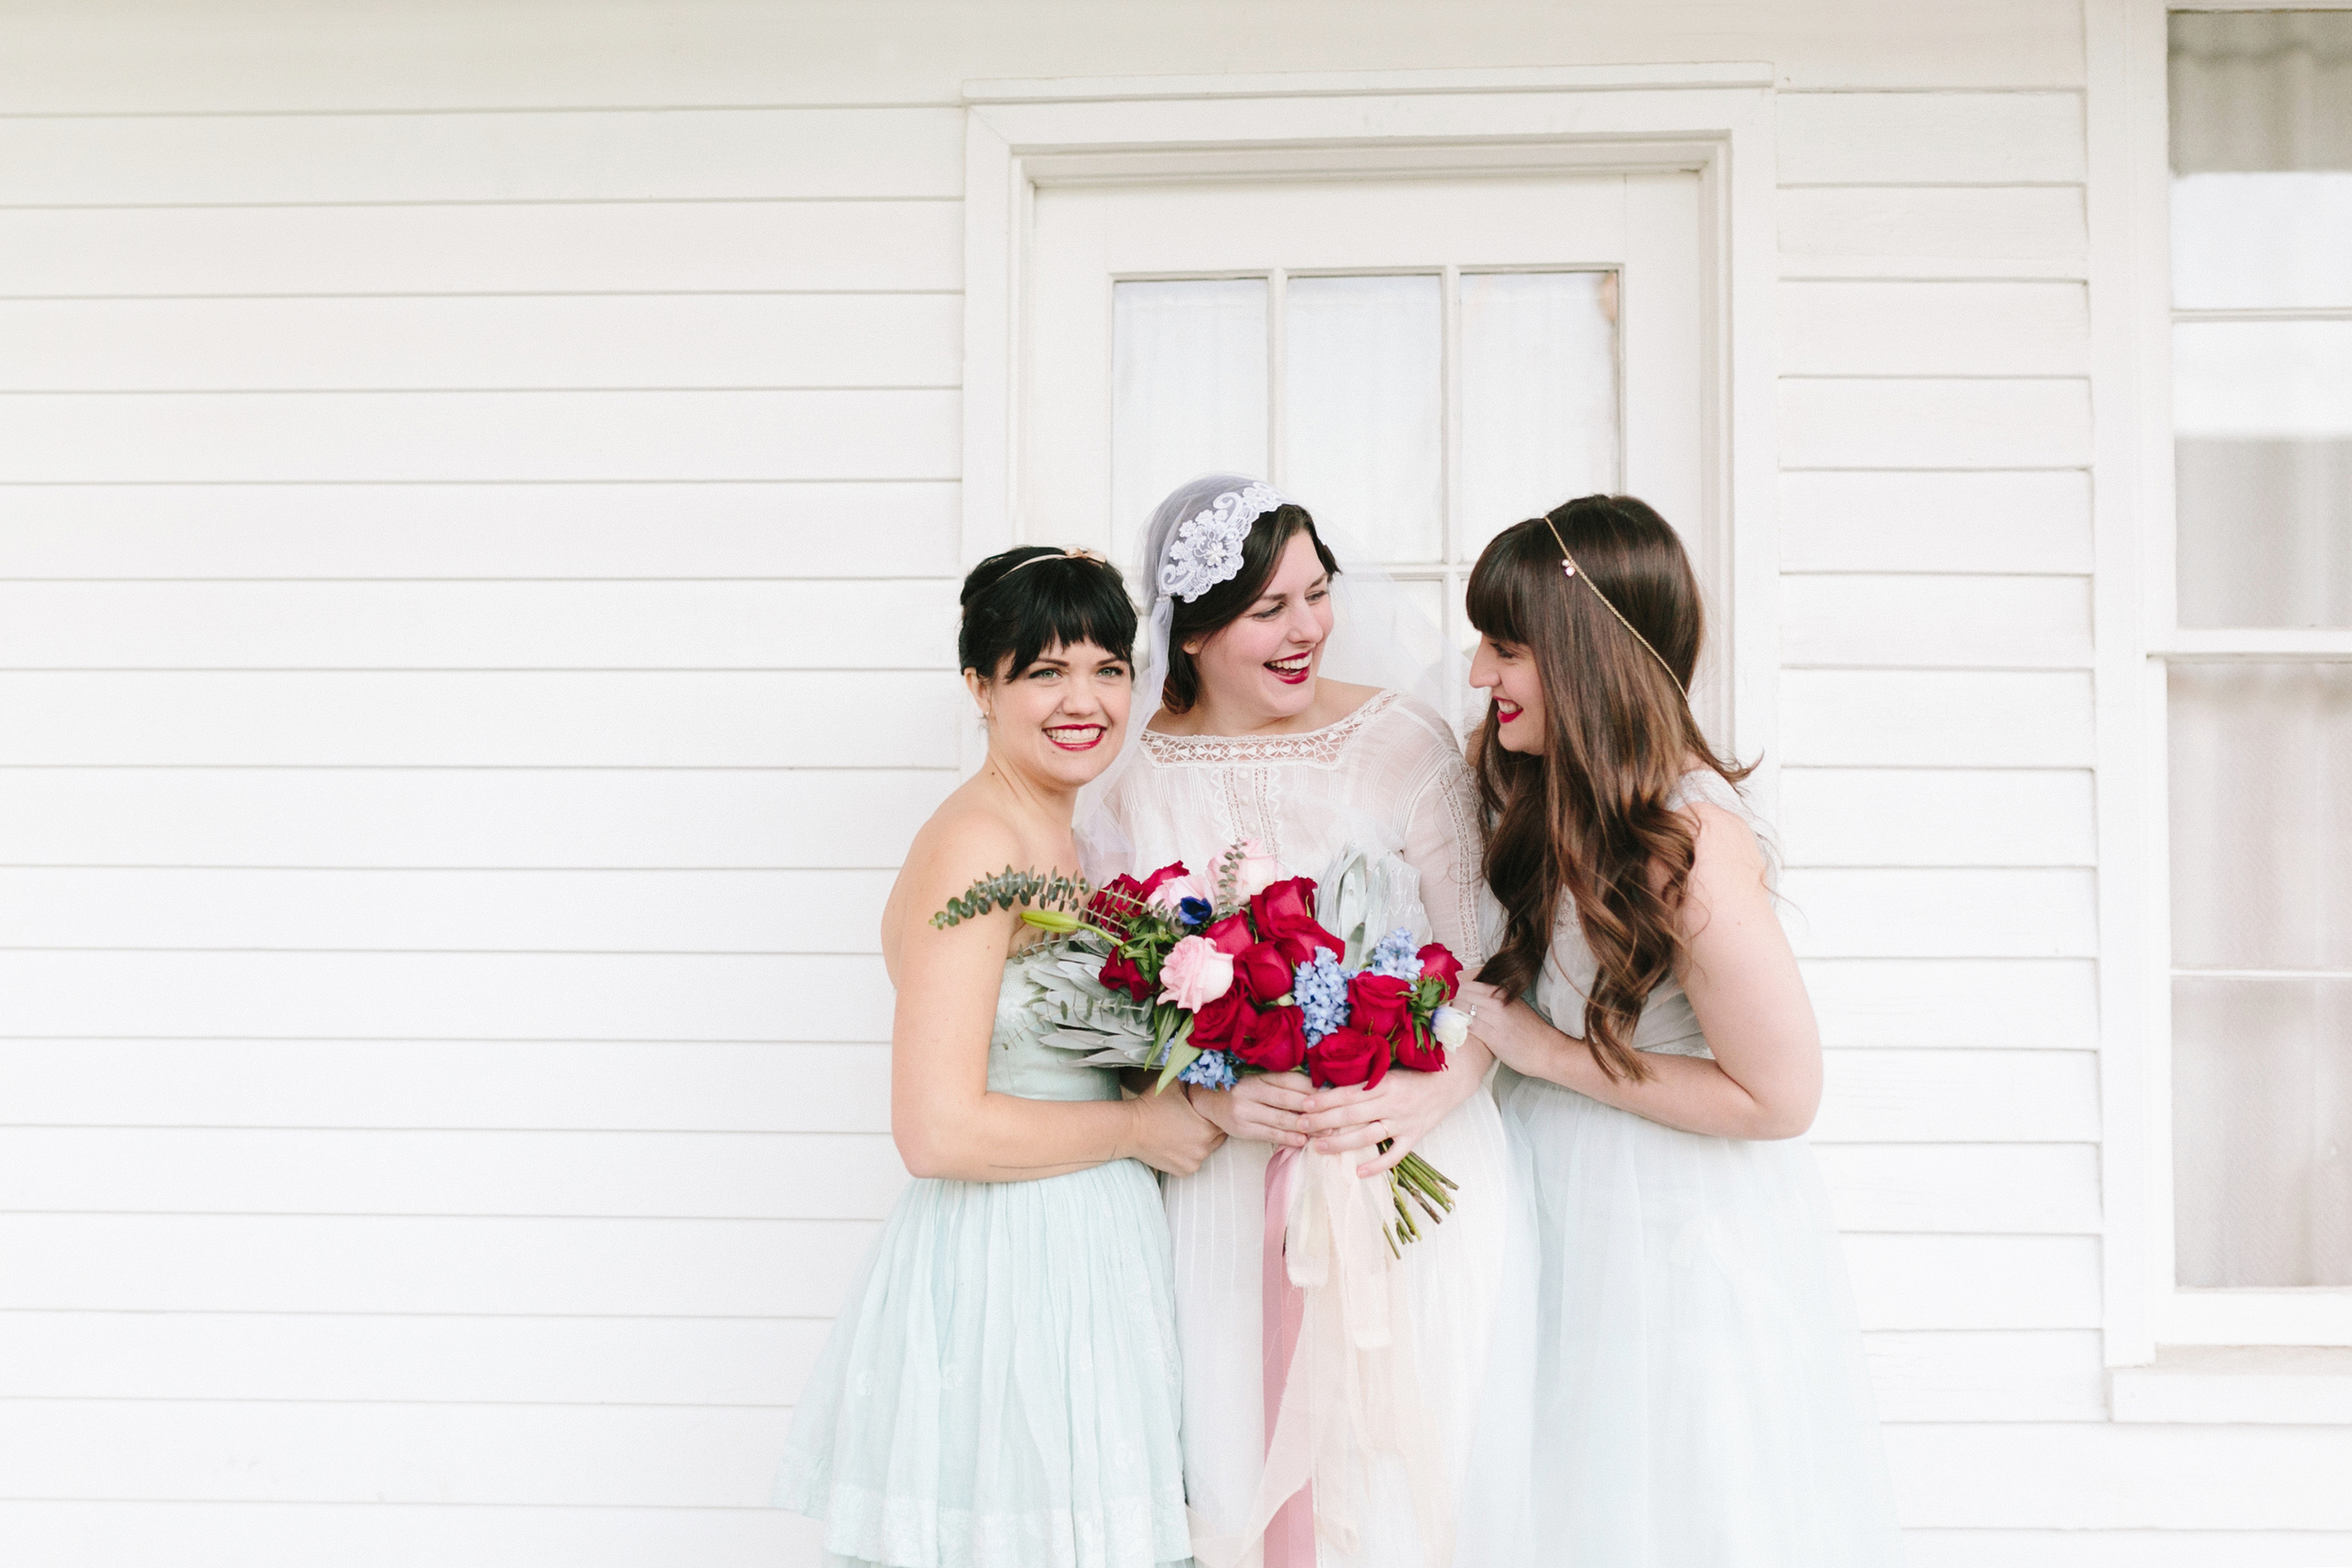 Valentines Bride and Her Bridesmaids  Styled Session  Hurtienne Photography  Portland Oregon Wedding Photographers (38)